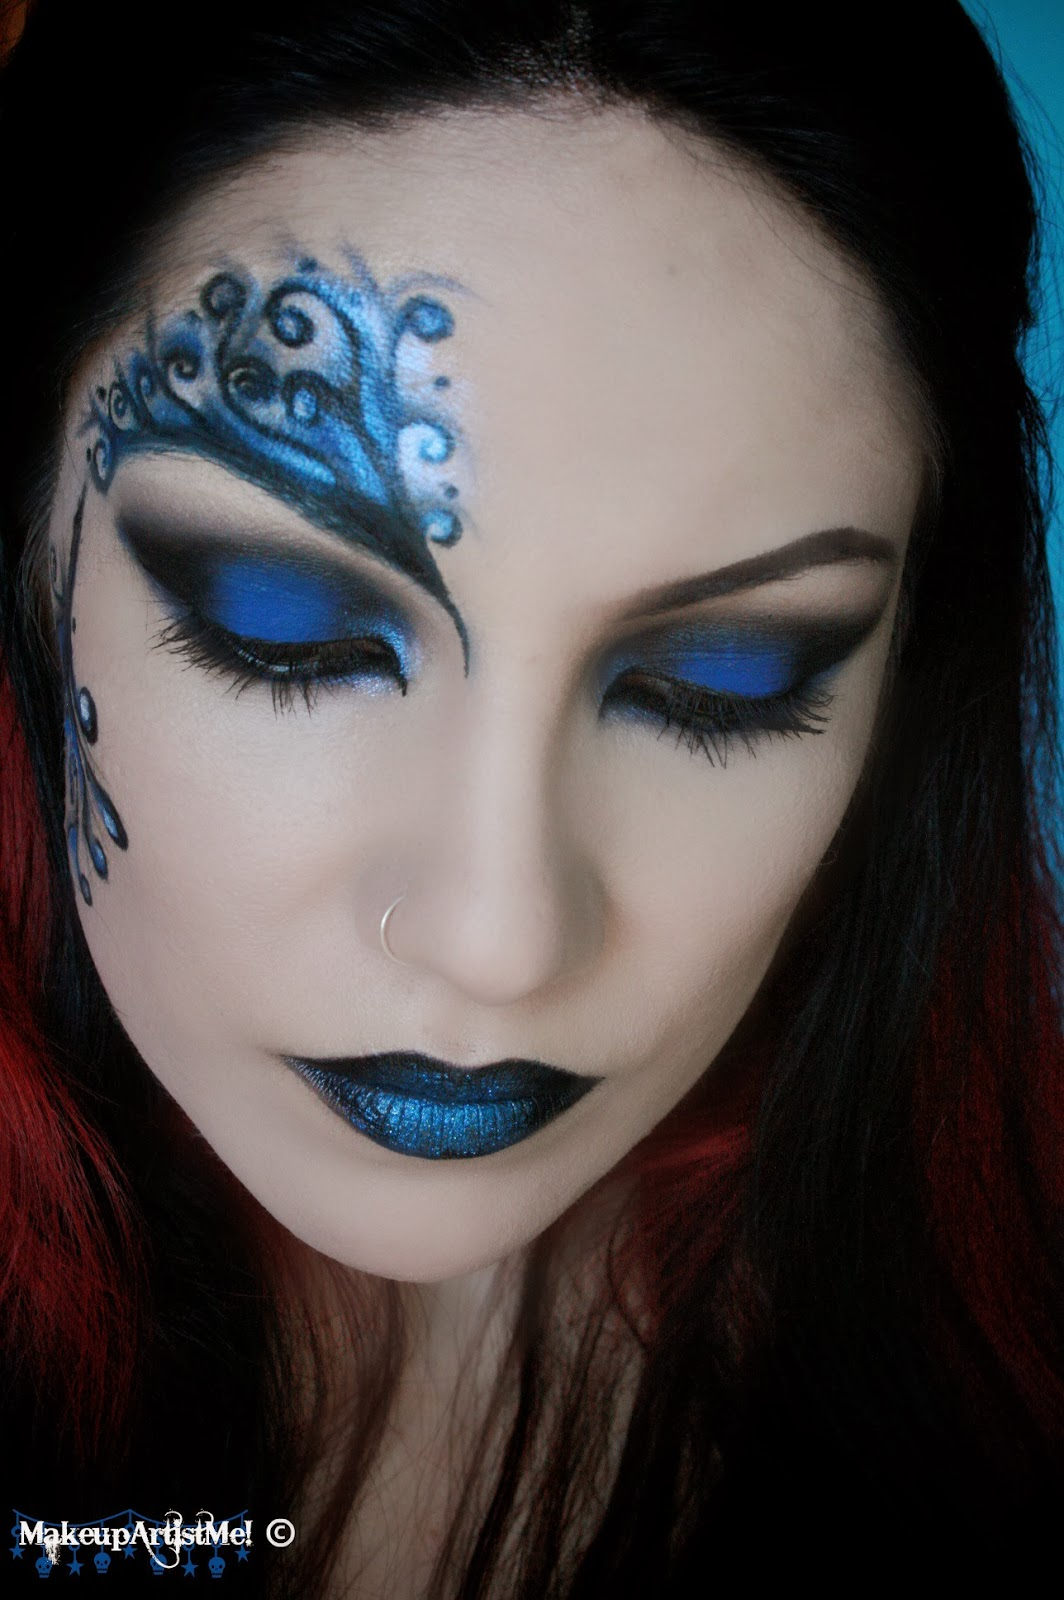 Make-up Artist Me!: Blue Secret- Blue Masquerade Makeup